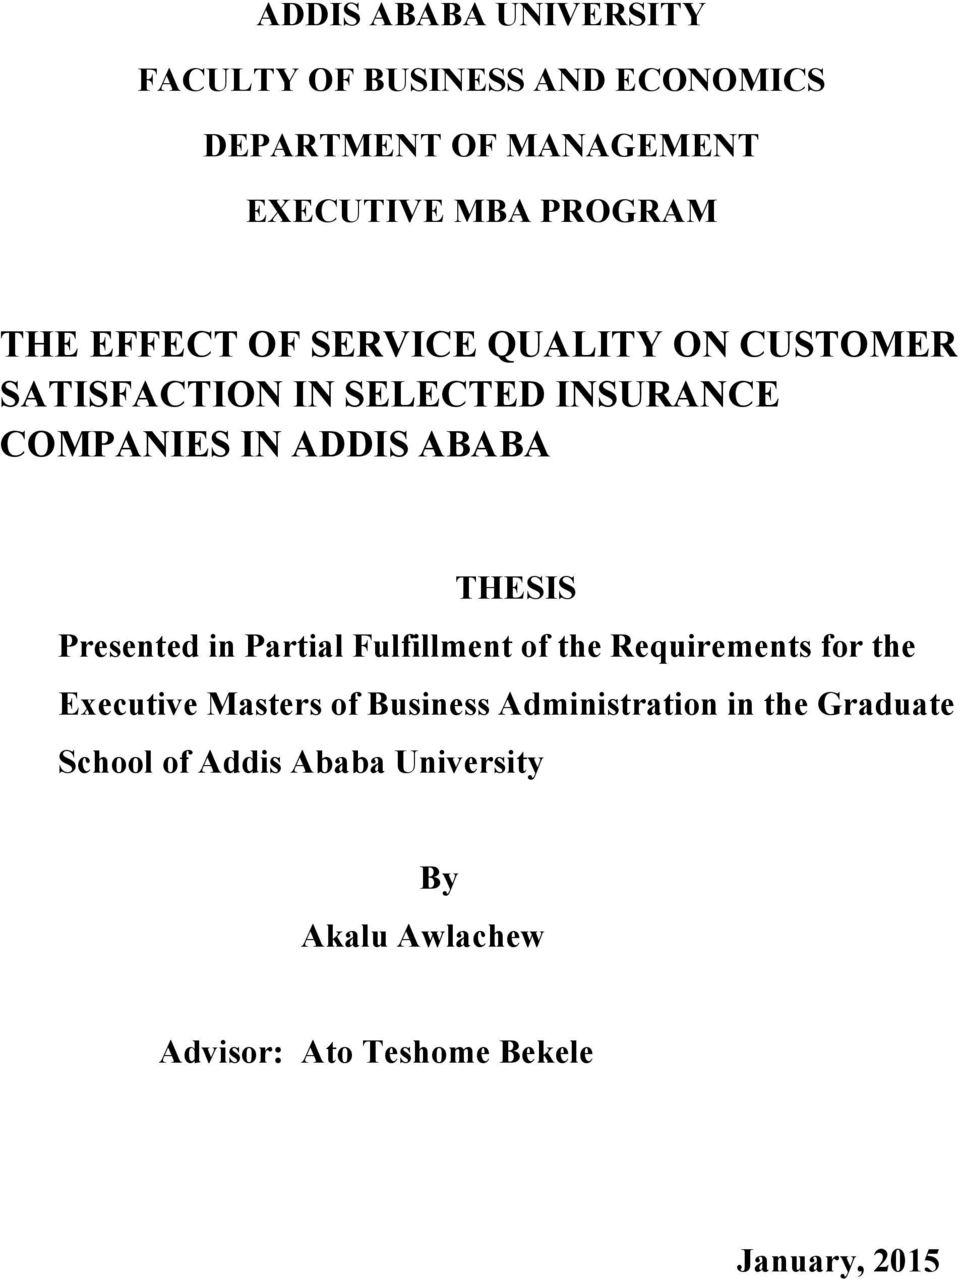 dissertation on customer satisfaction and loyalty the levels of customer satisfaction of convenience stores in santa best essay net net